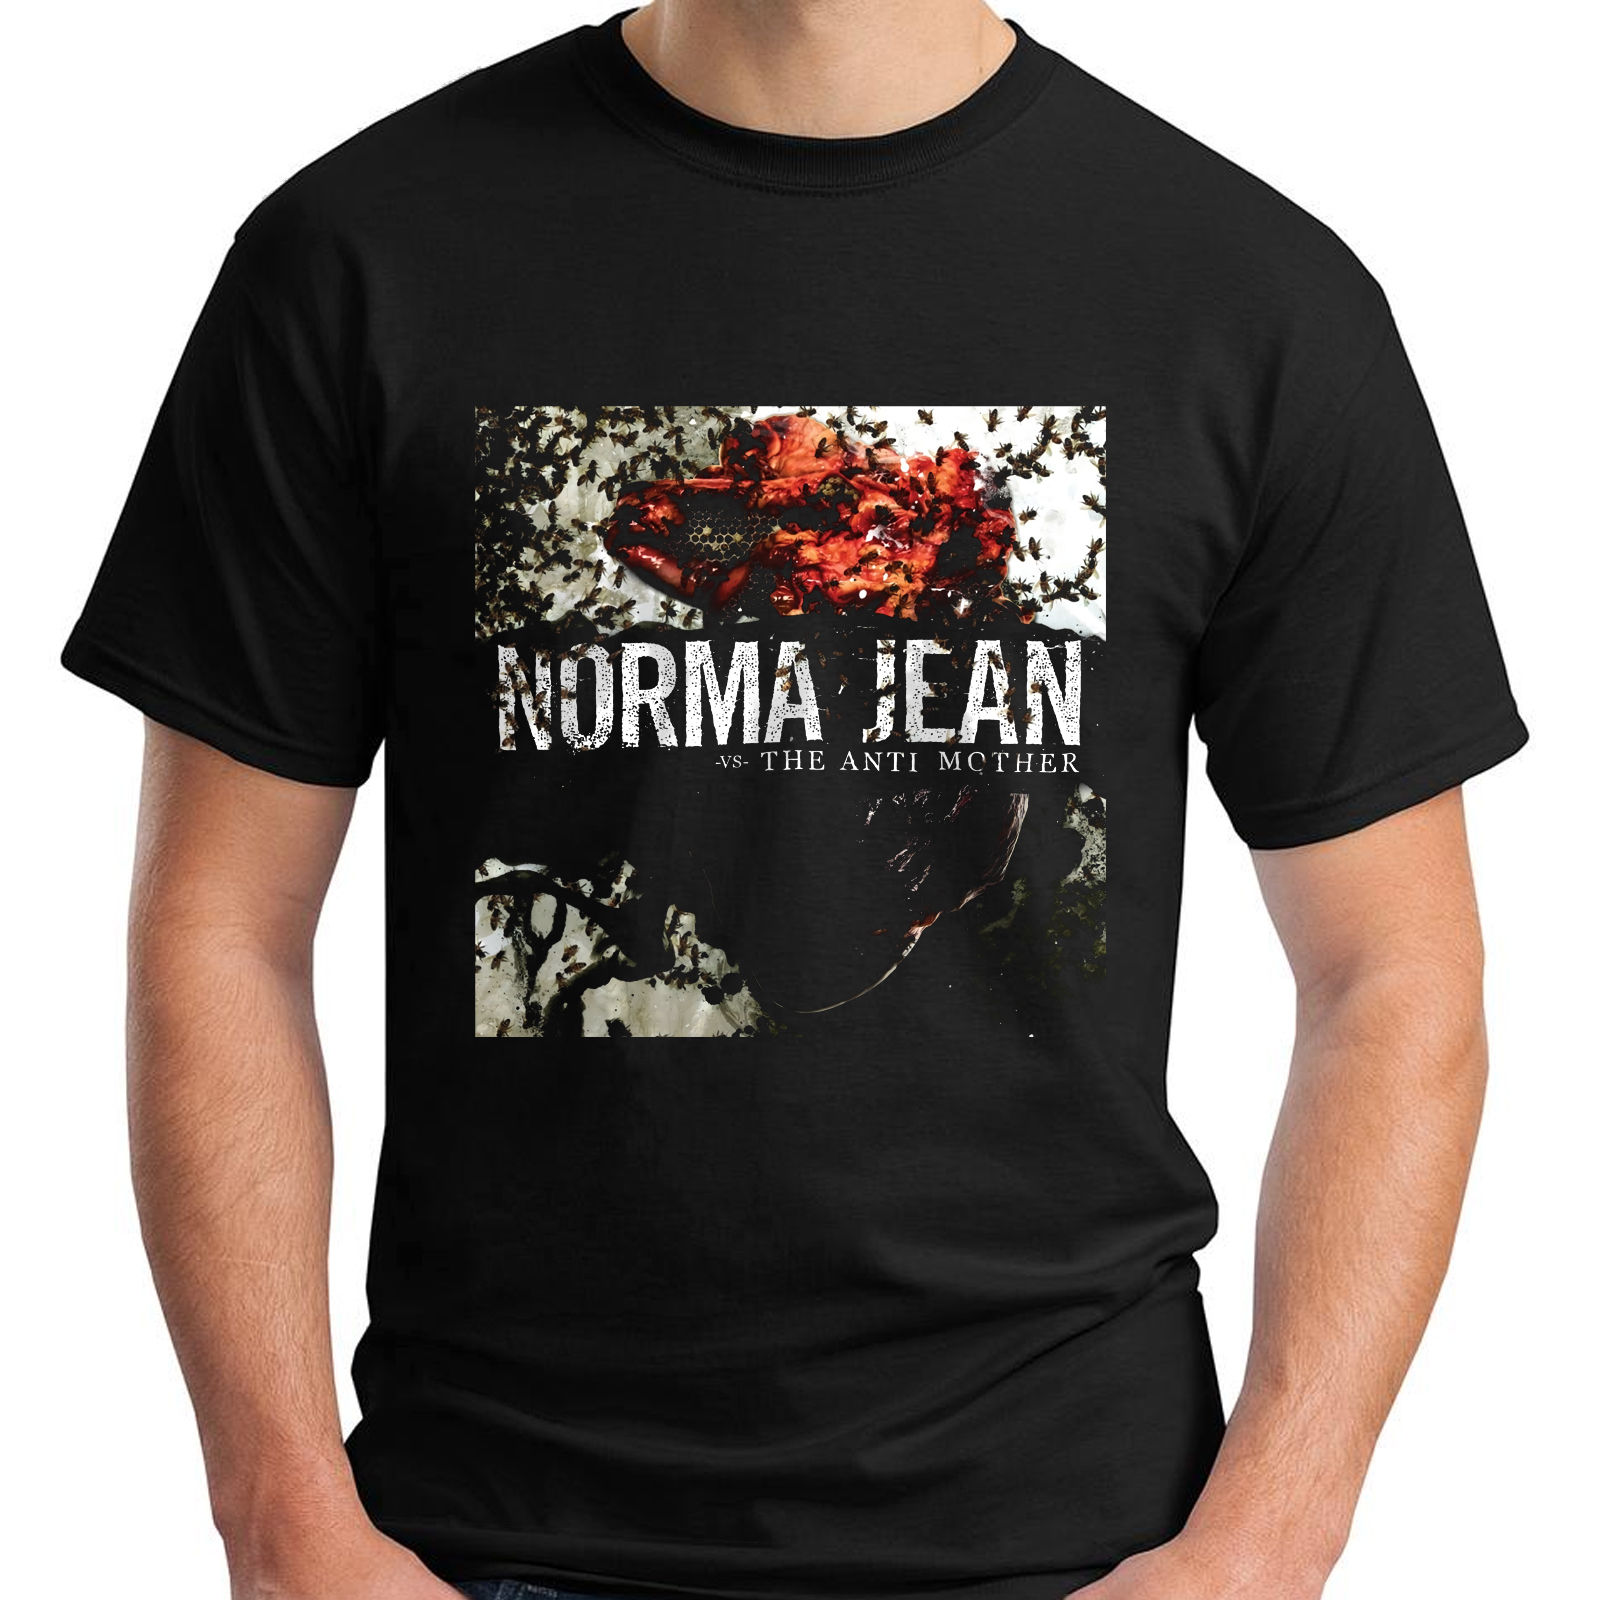 NORMA JEAN The Anti Mother Metalcore Band Sleeve Black Mens T-Shirt Size S-3XL T Shirt Discount 100 % Cotton MenS